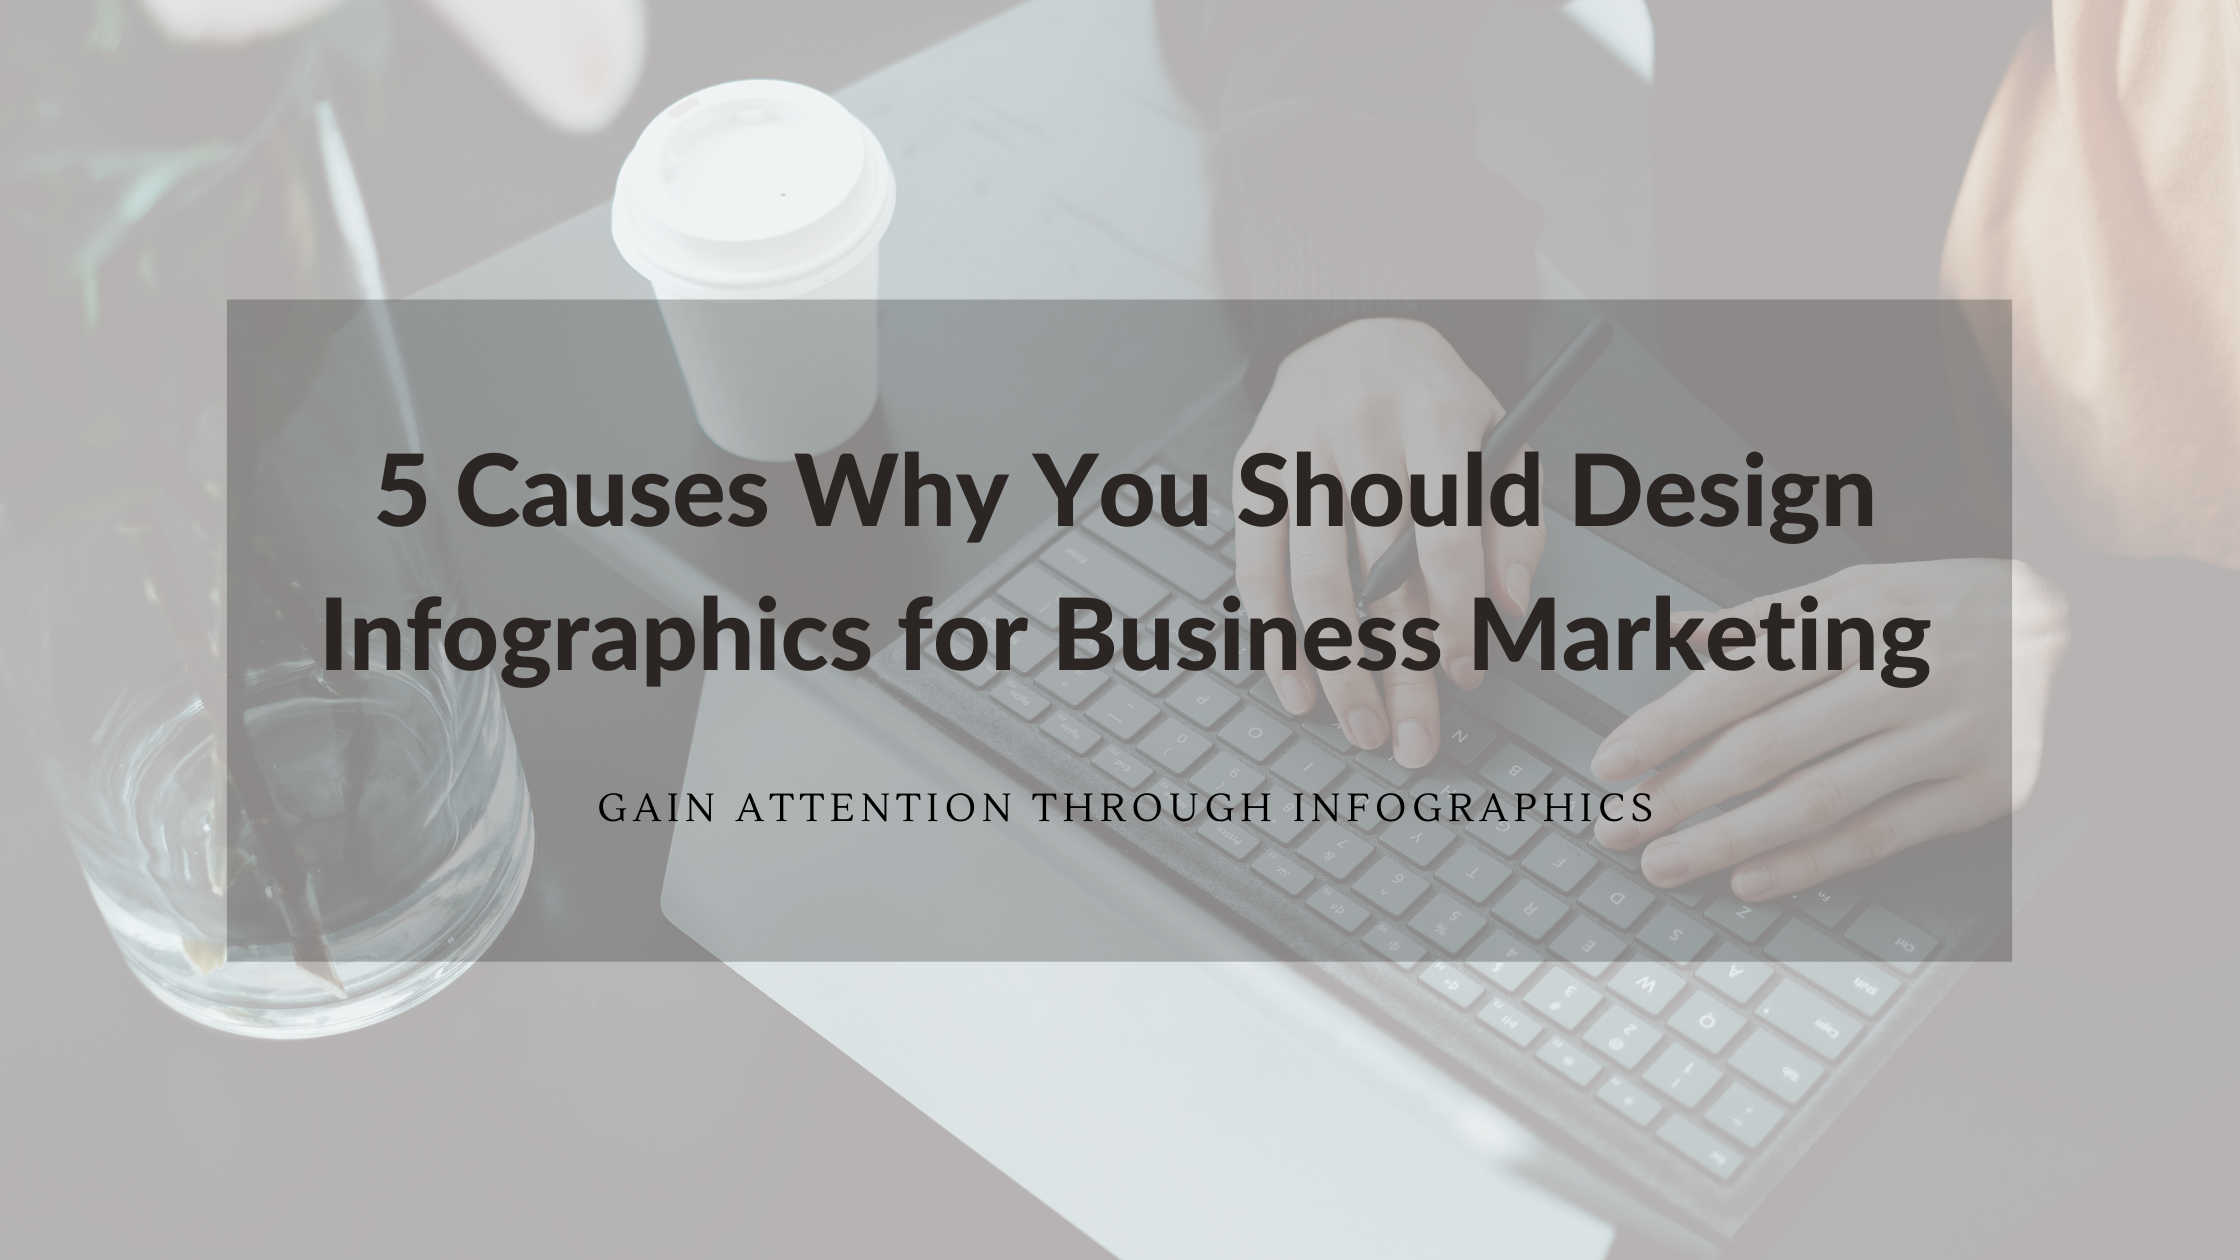 Gain attention through infographics